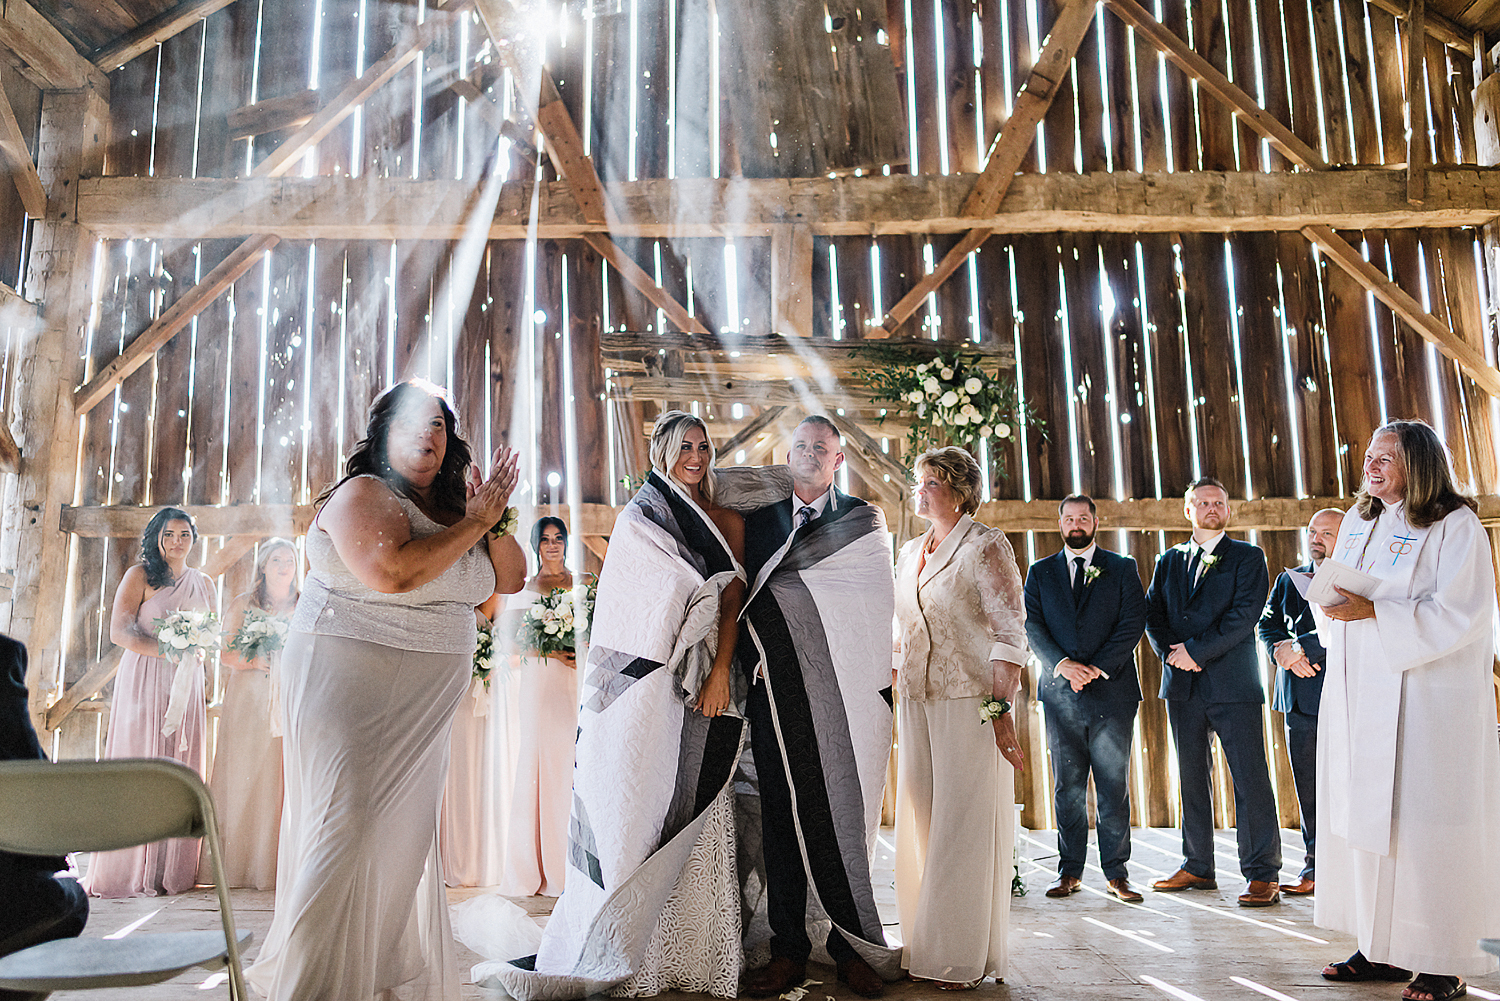 dowswell-barn-wedding-beaverton-best-wedding-photographers-toronto-moody-style-candid-photojounalistic-approach-intimate-vintage-farm-wedding-Farm-wedding-venue-details-ceremony-bride-and-groom-aboriginal-traditional-ceremony-bequtifukl.jpg